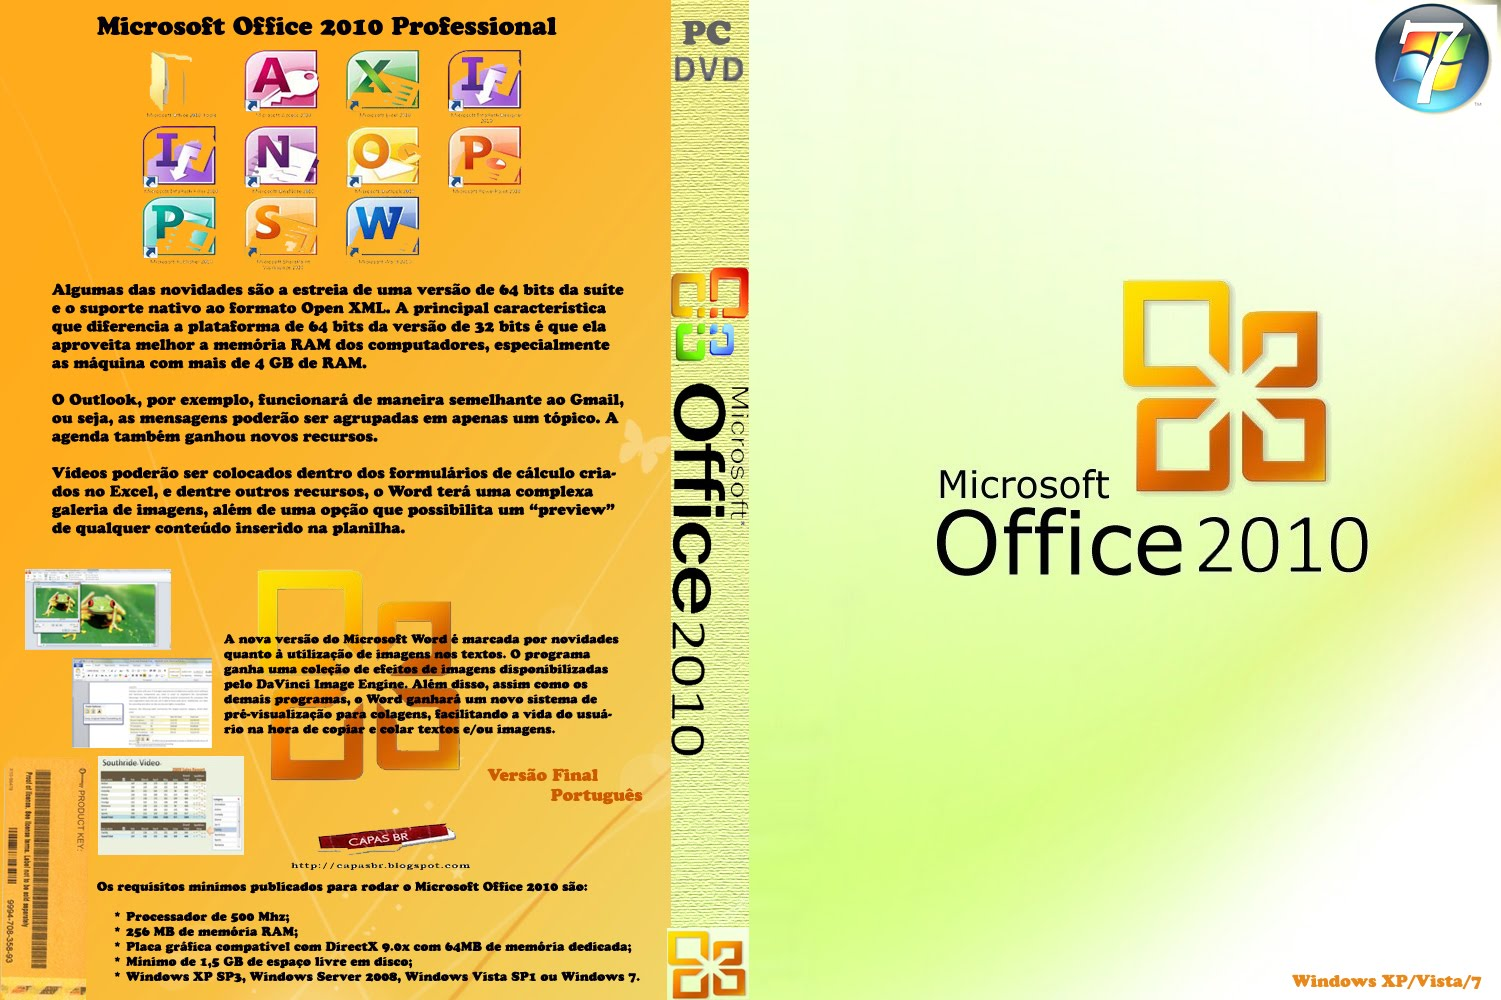 ms office 2010 cracked version for windows 7